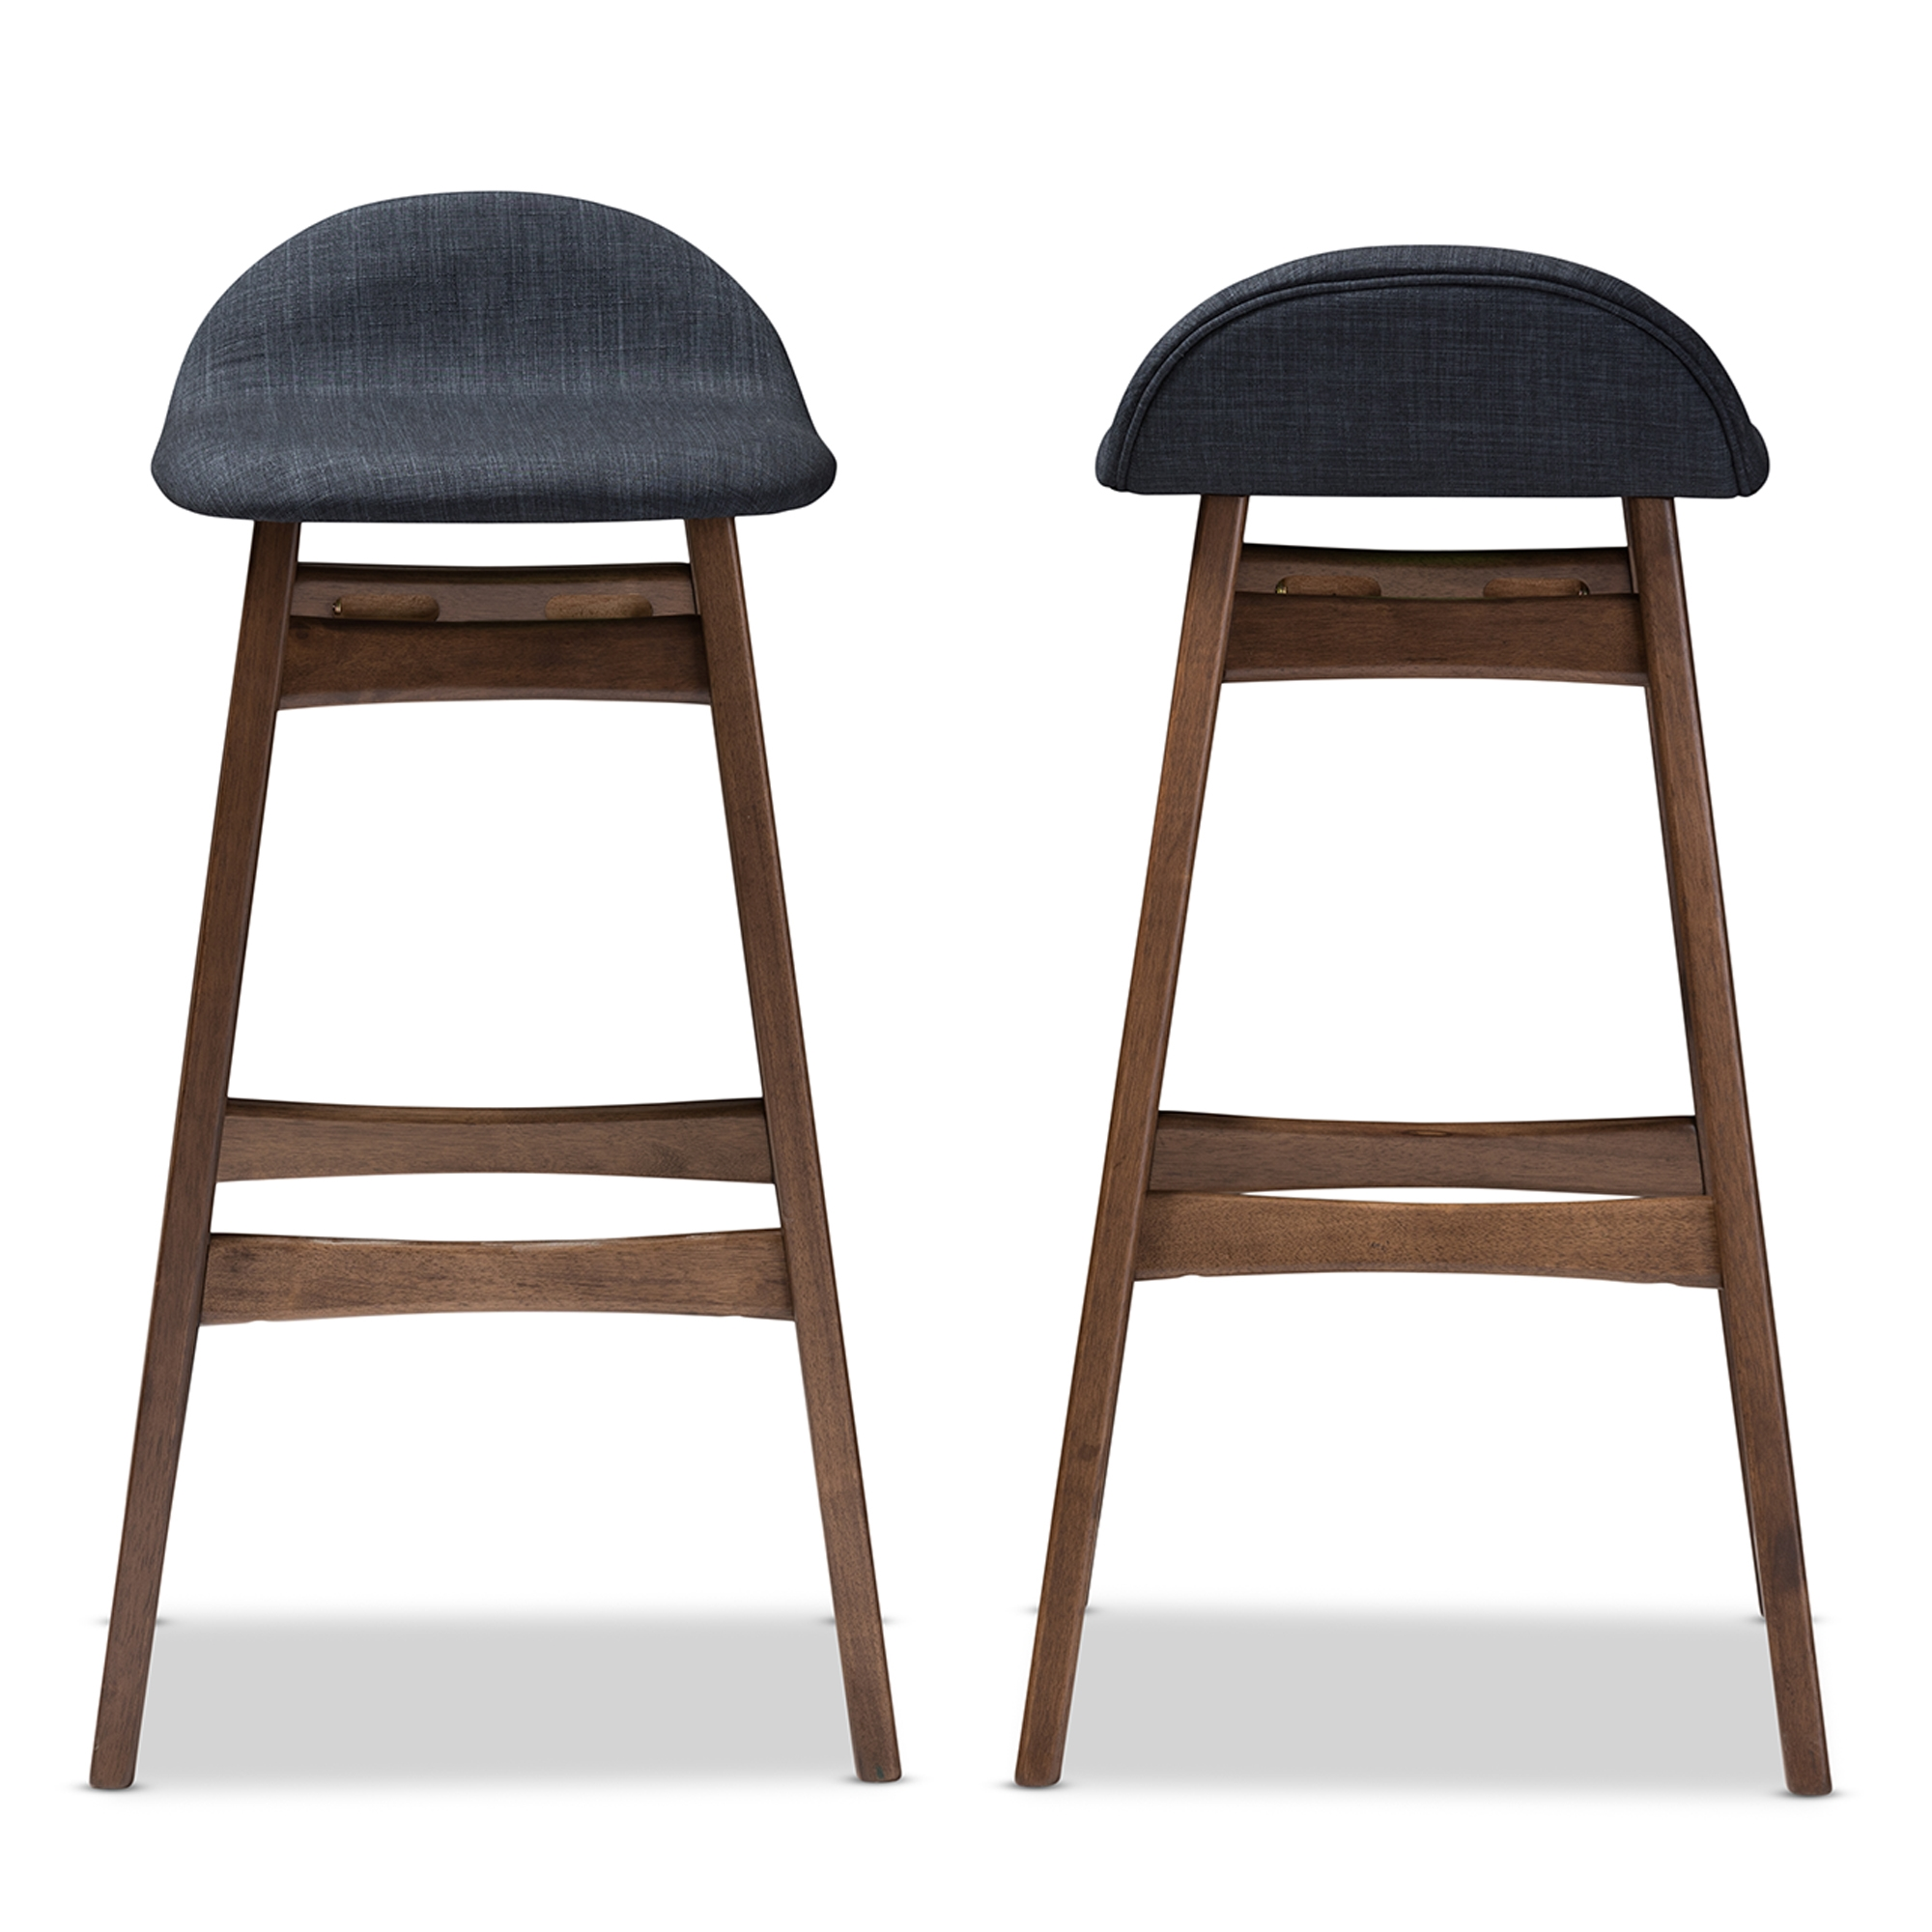 Baxton Studio Bloom Mid-century Retro Modern Scandinavian Style Dark Blue Fabric Upholstered Walnut Wood Finishing 30-Inches Bar Stool  sc 1 st  Baxton Studio Outlet & Baxton Studio Bloom Mid-century Retro Modern Scandinavian Style ... islam-shia.org